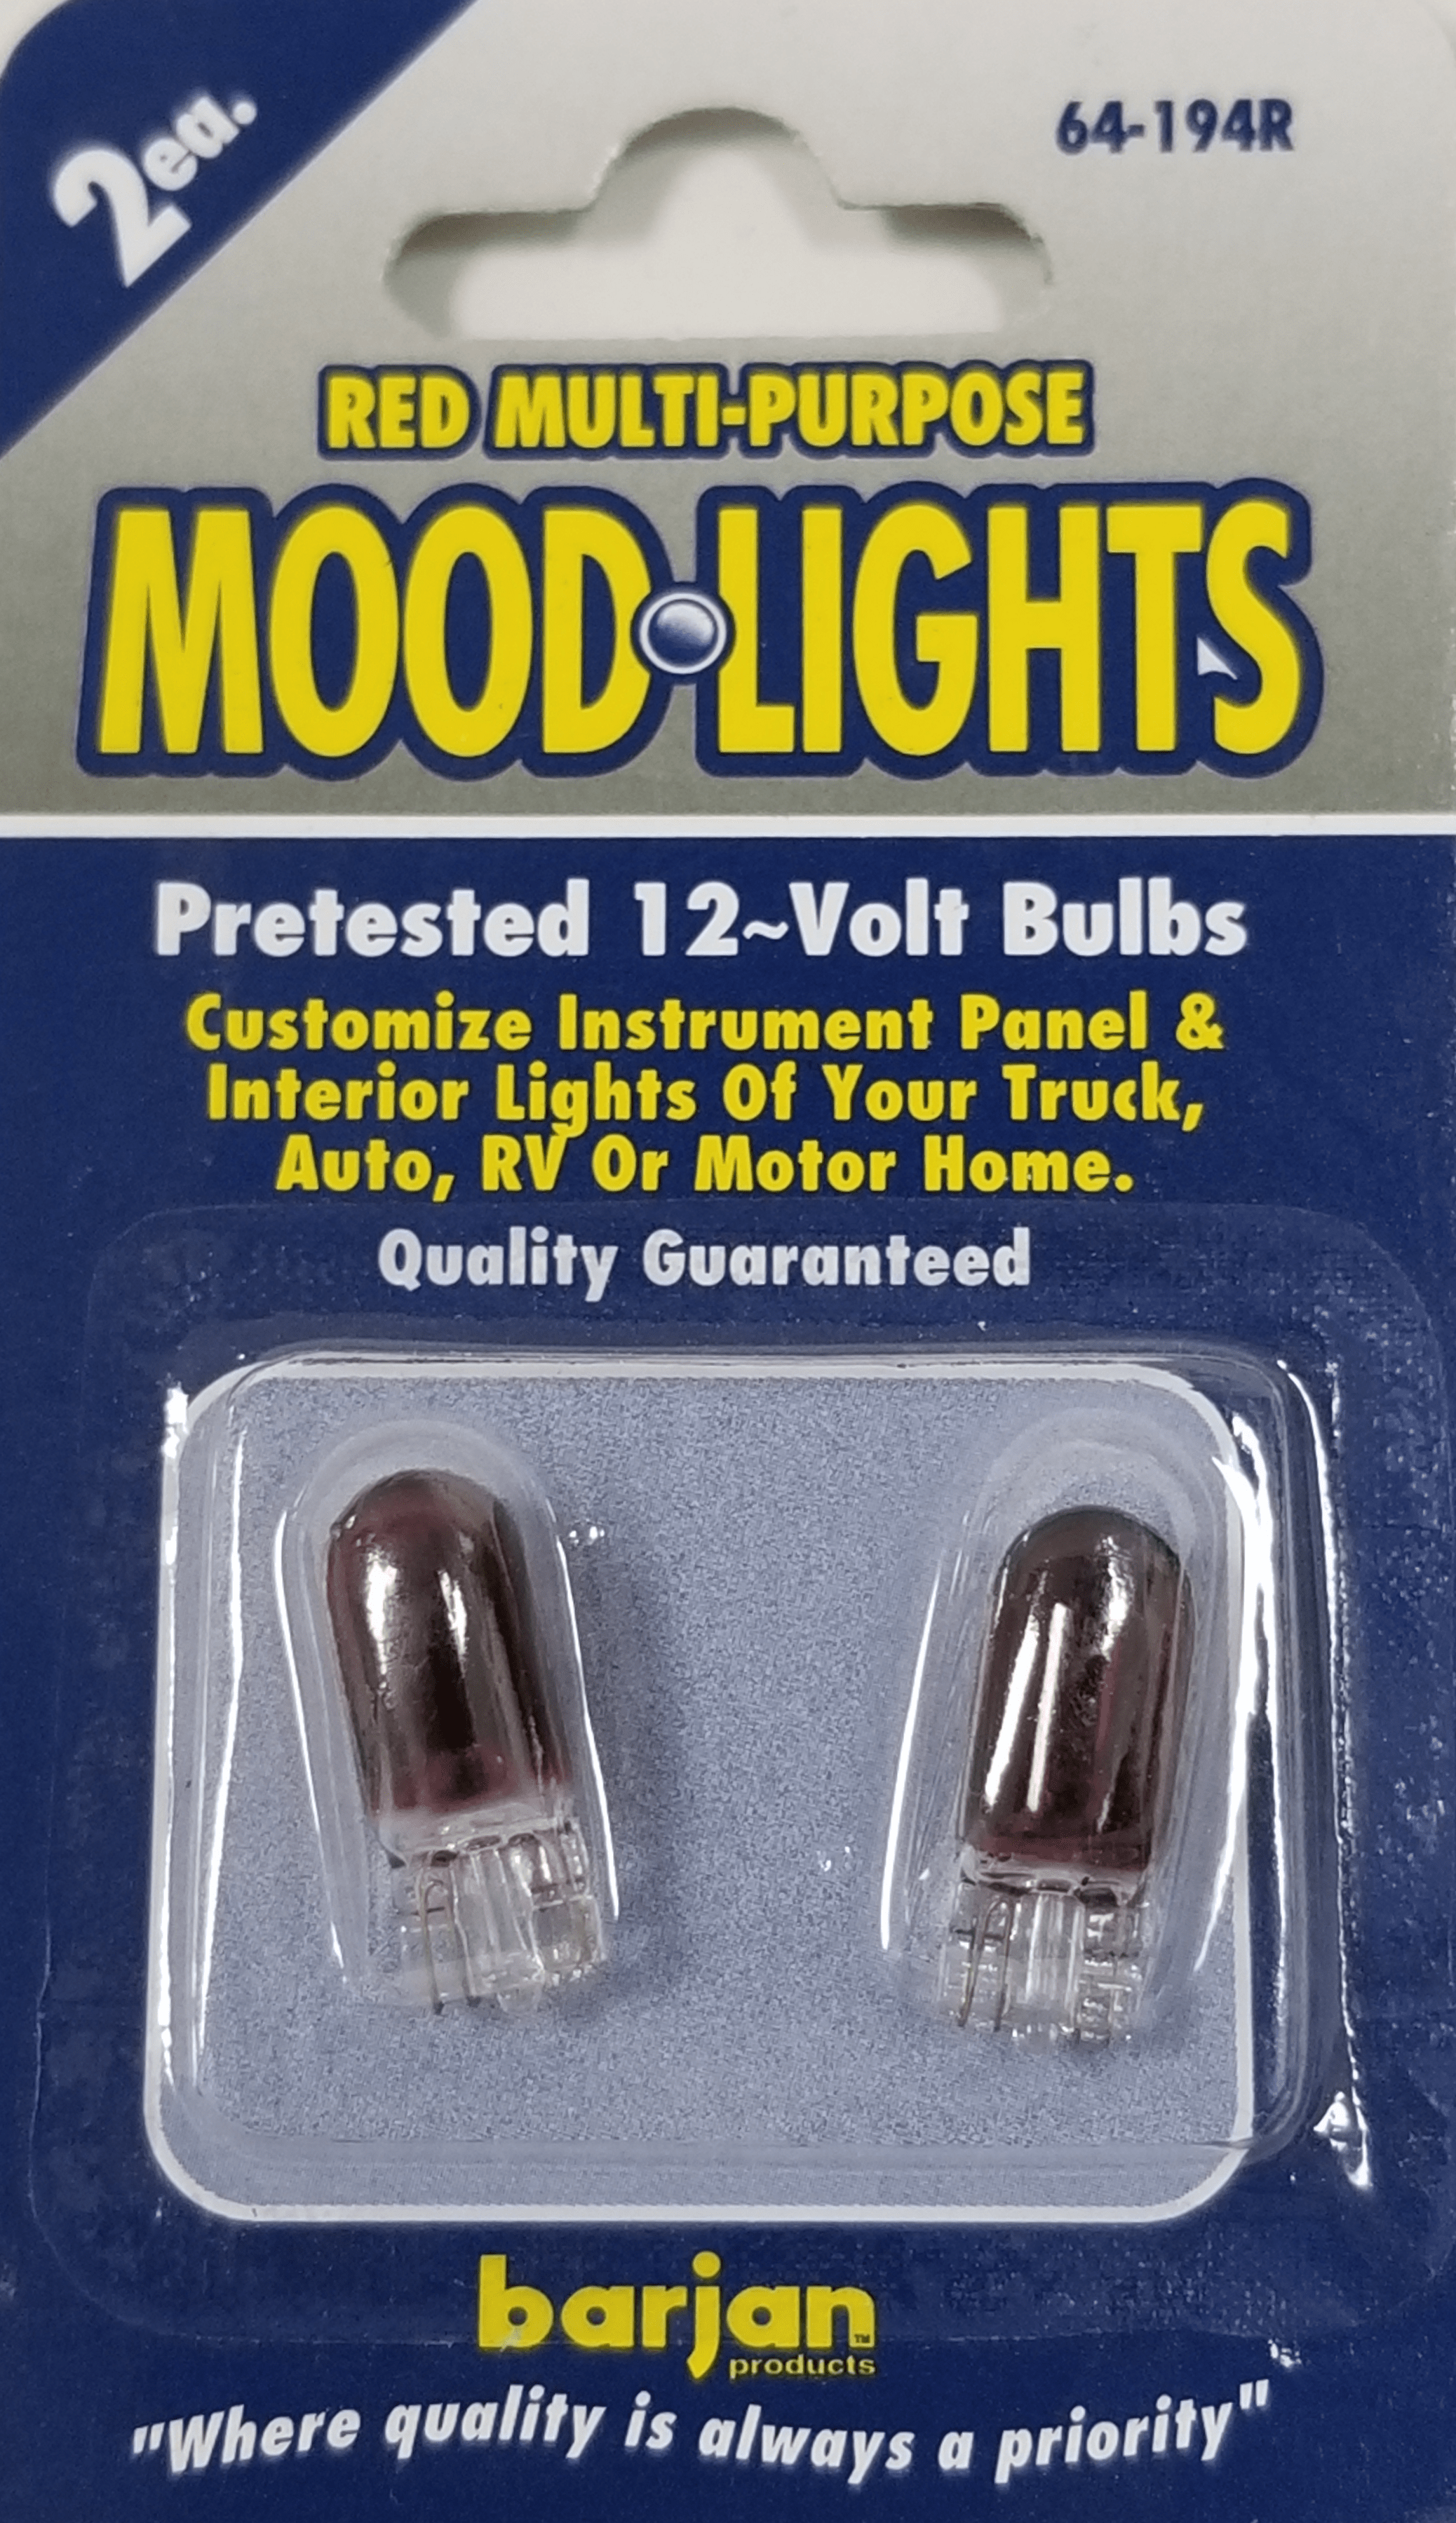 064194R - Red Moodlights Auto Bulbs 2/Card